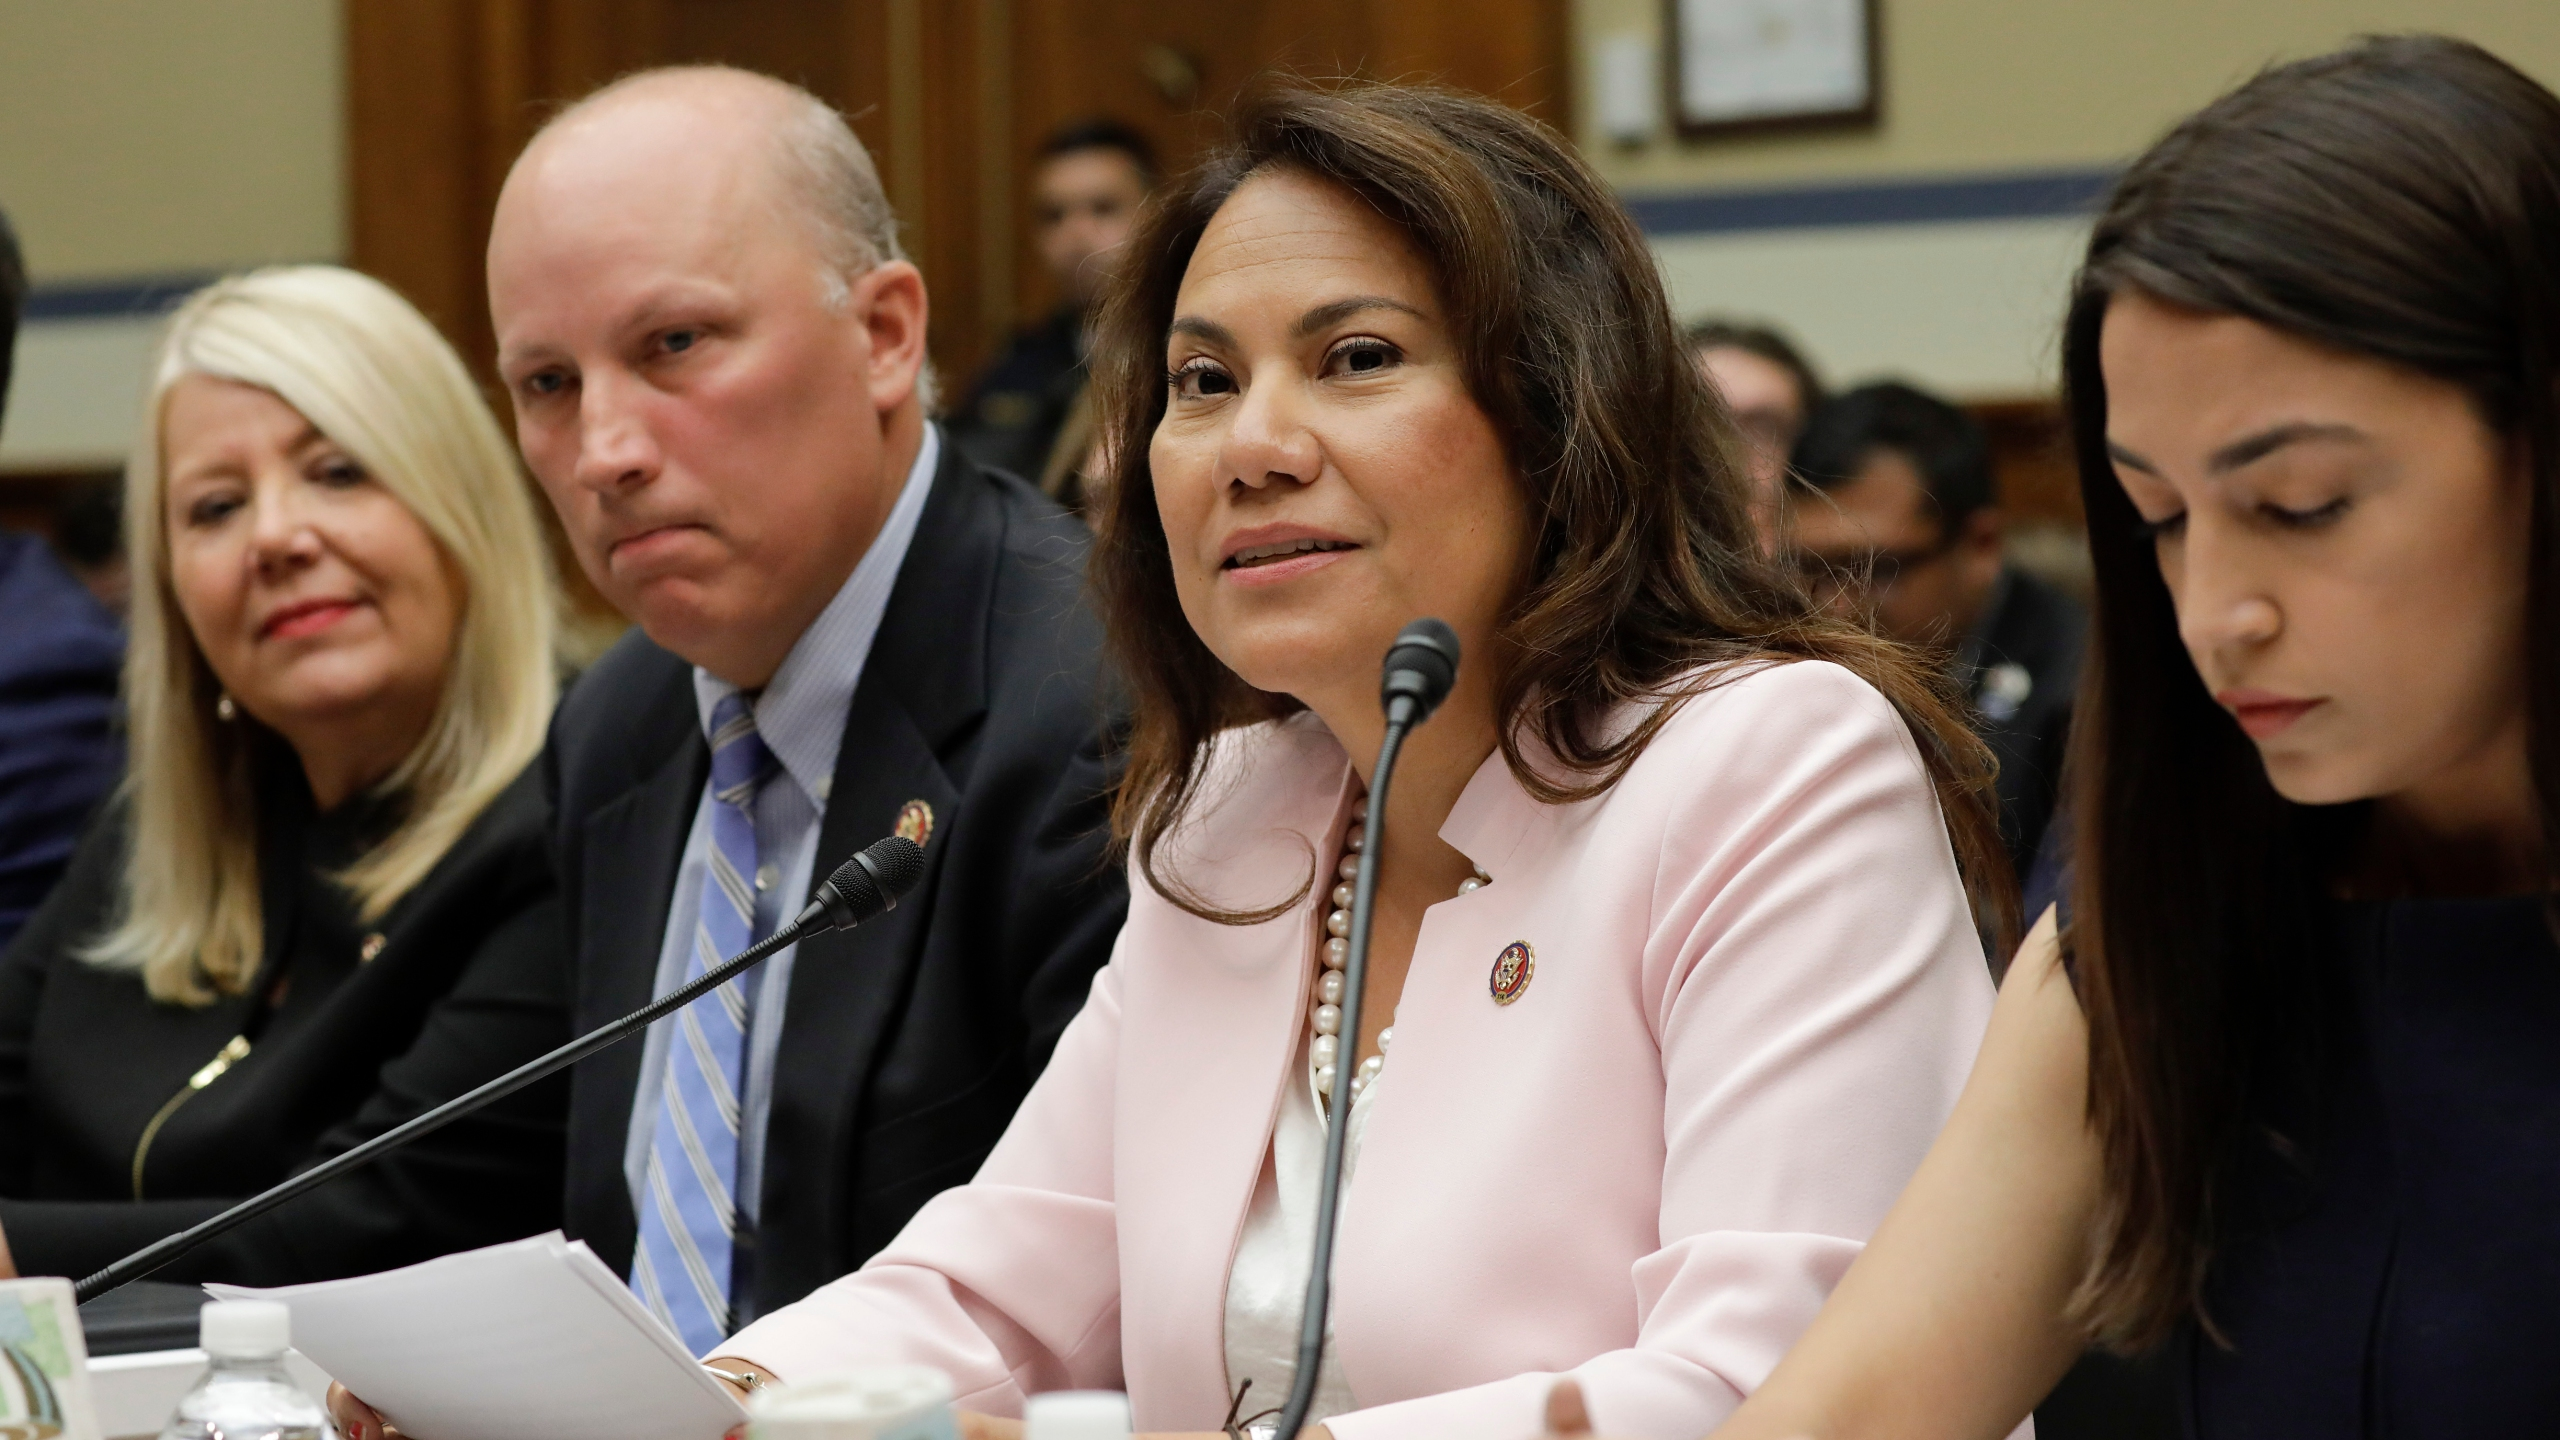 National lawmakers in El Paso to talk about immigration and domestic terrorism